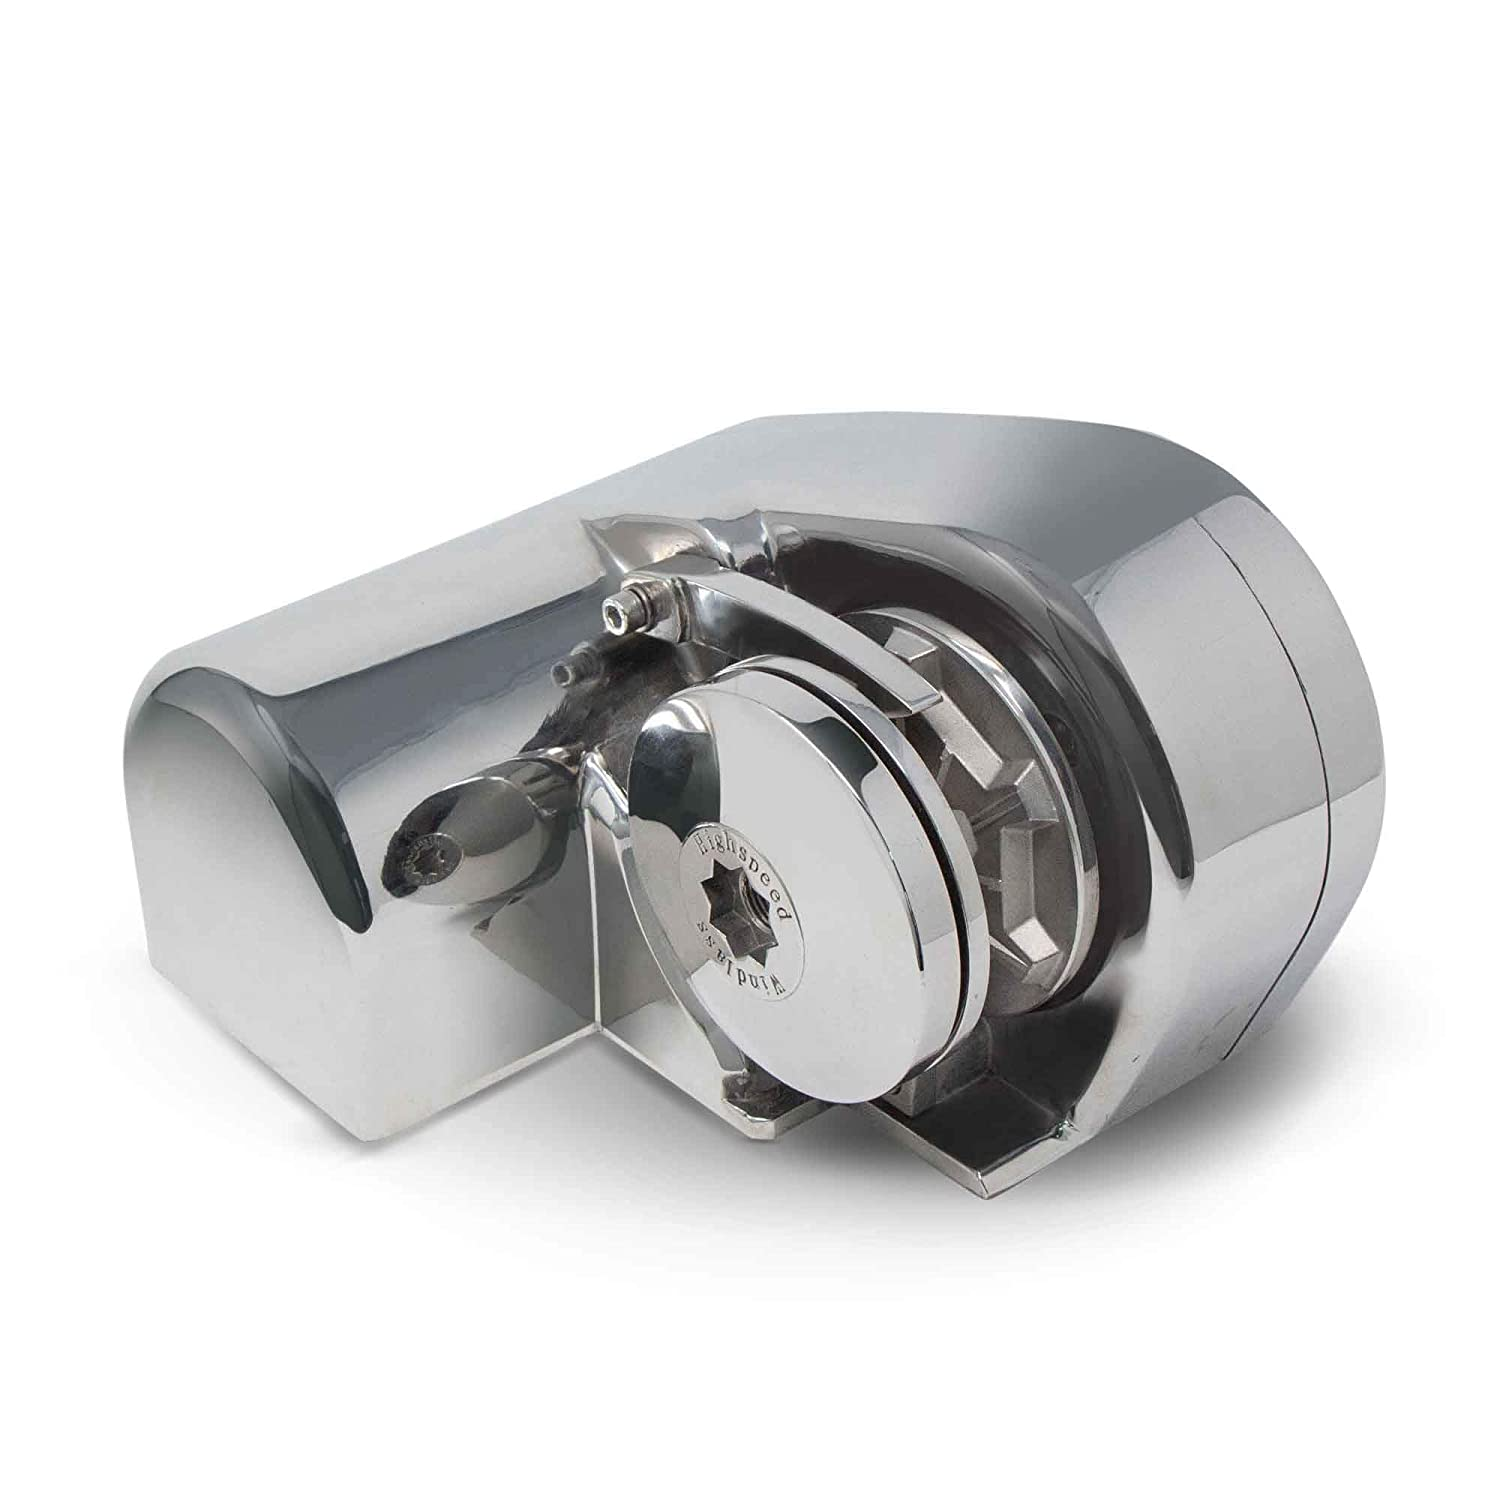 S612 Marine Horizontal Stainless Steel Anchor Windlass 600W - Heavy Duty - Require rope and chain in the description - (All Accessories Included)- Five Oceans BC-3930